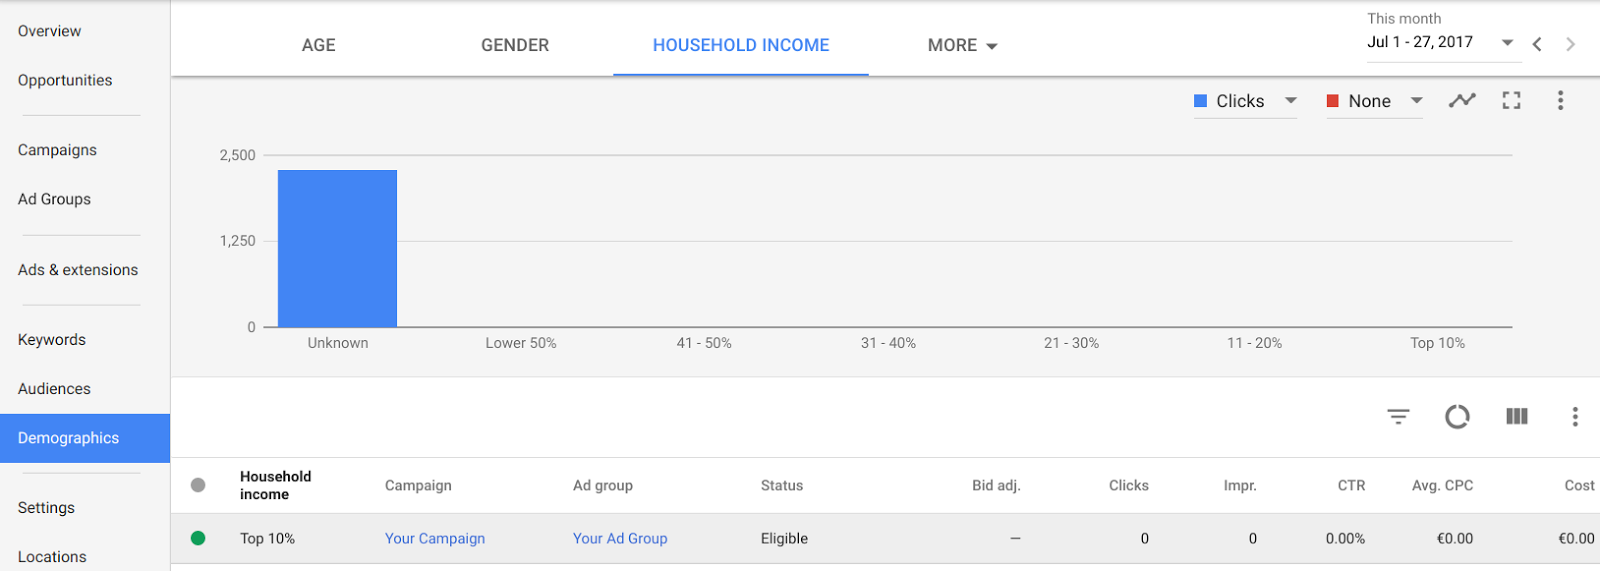 Adwords Household Income Targeting